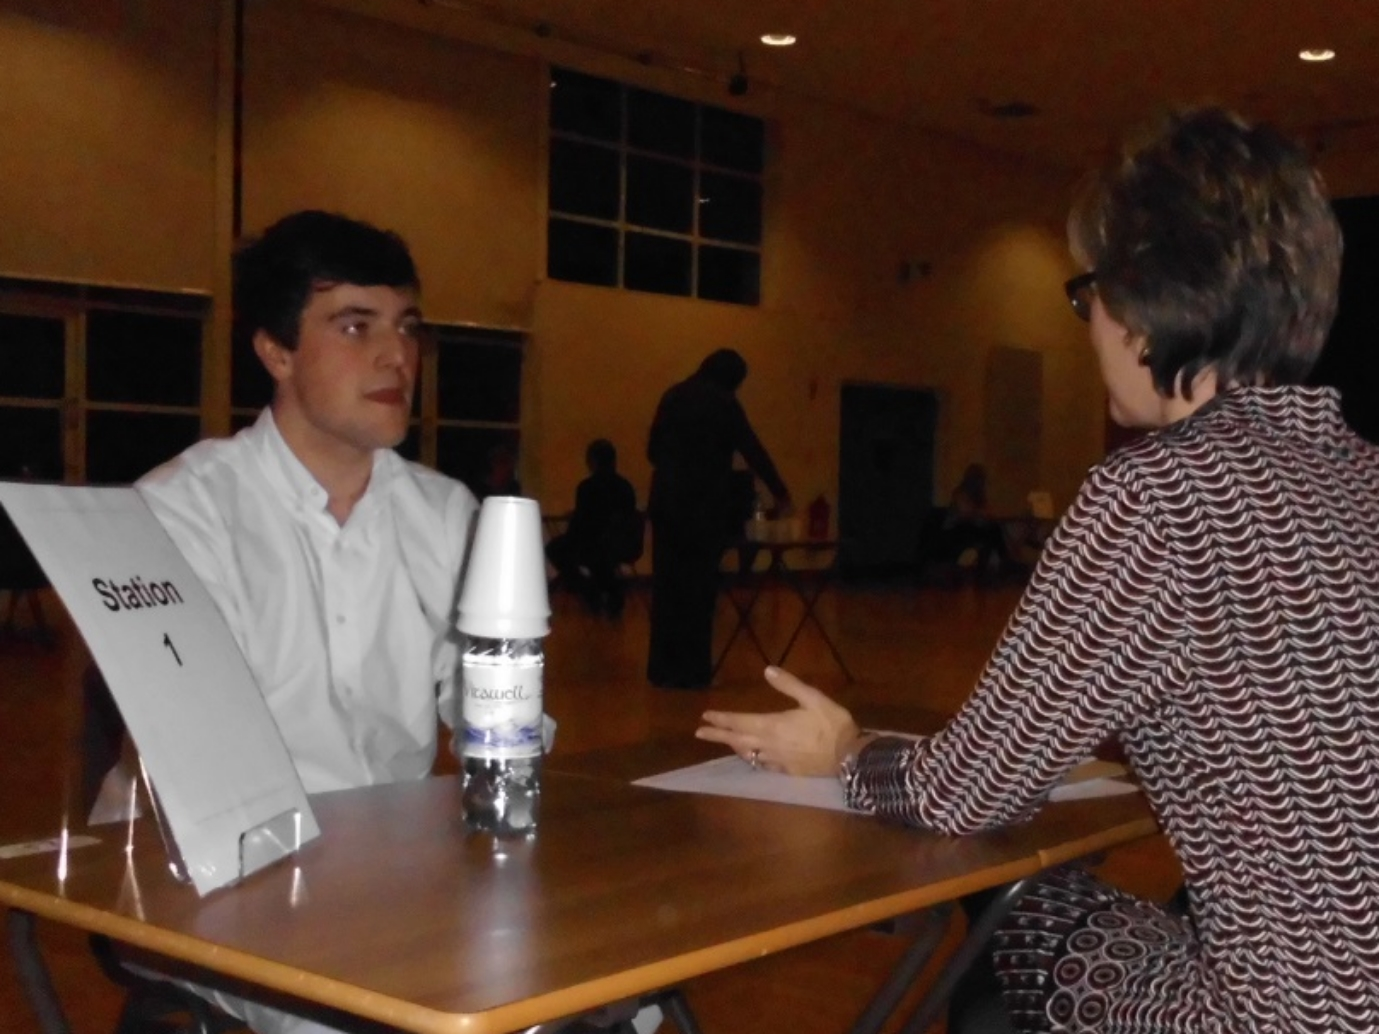 Head boy, Mark Rea, with Dr Gibson (parent and past pupil) at the first MMI (Multi Mini Interview) station.